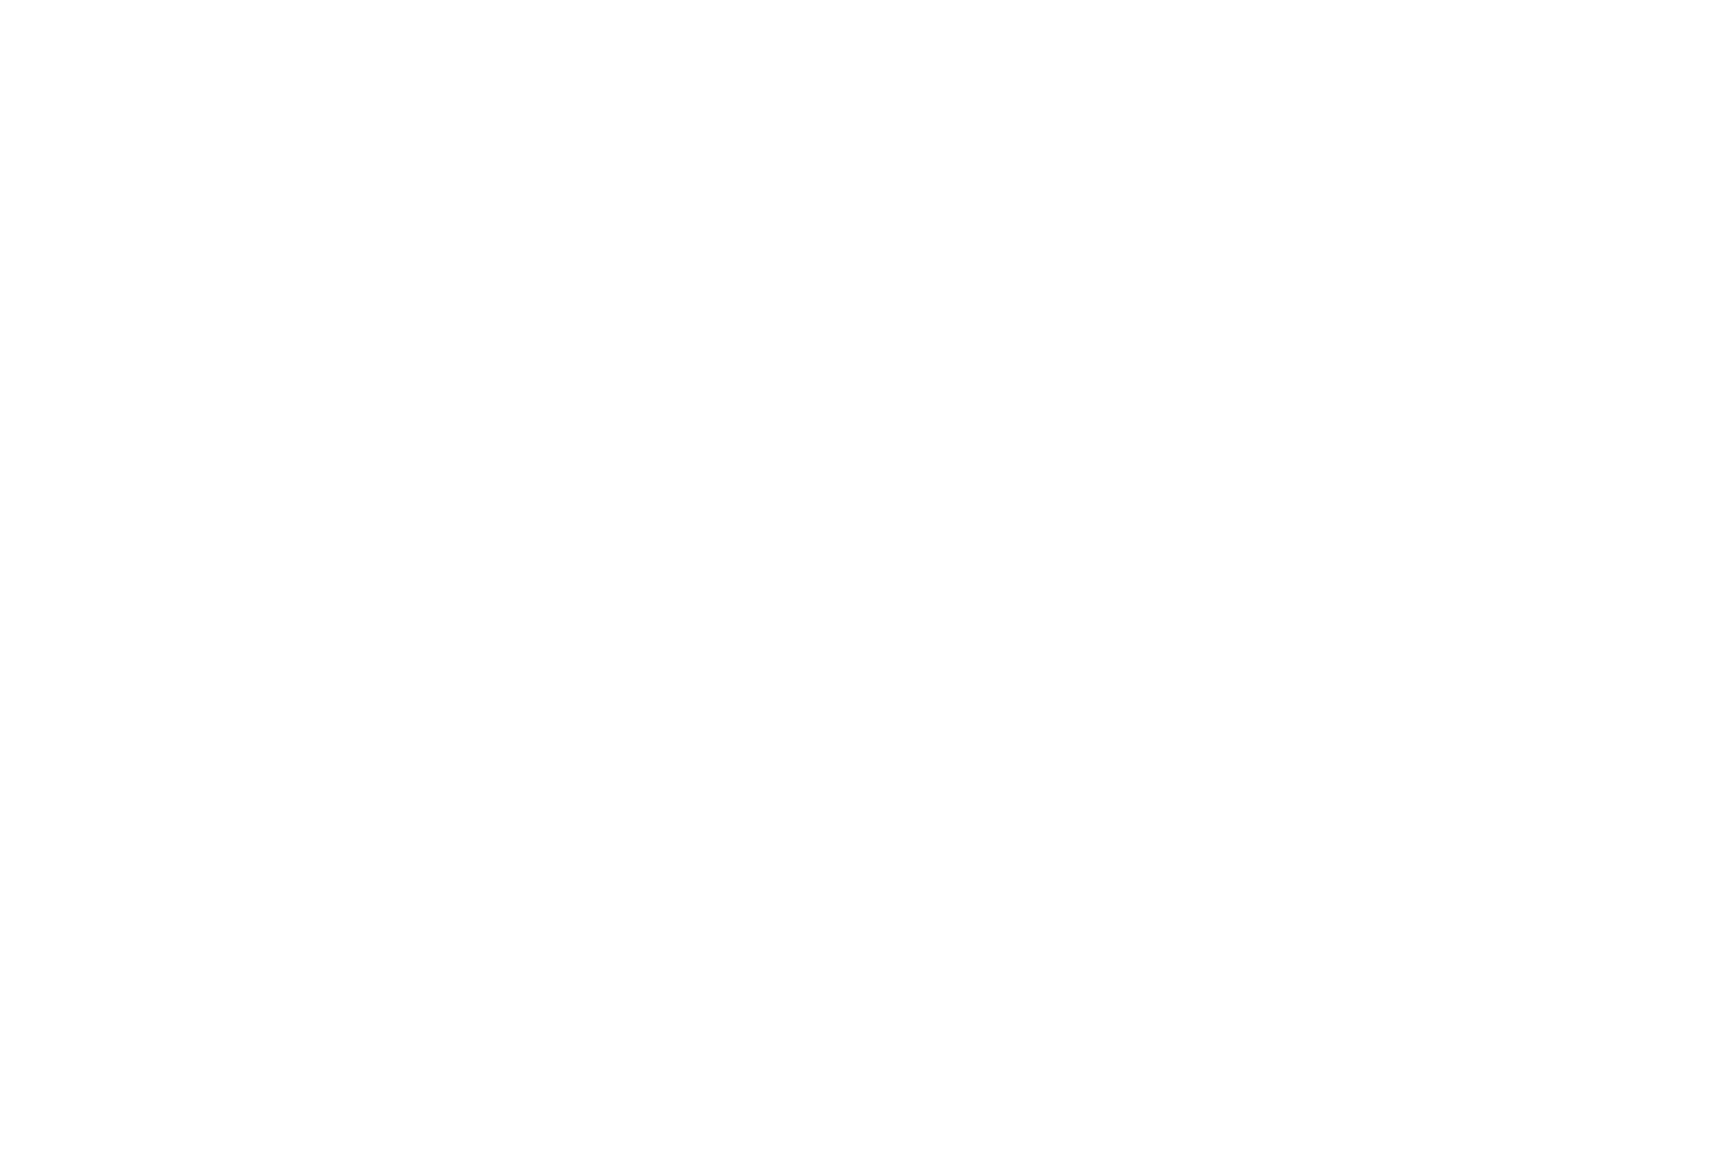 Grand Prize Winner   Velocity Motion Graphics  HDR   2014